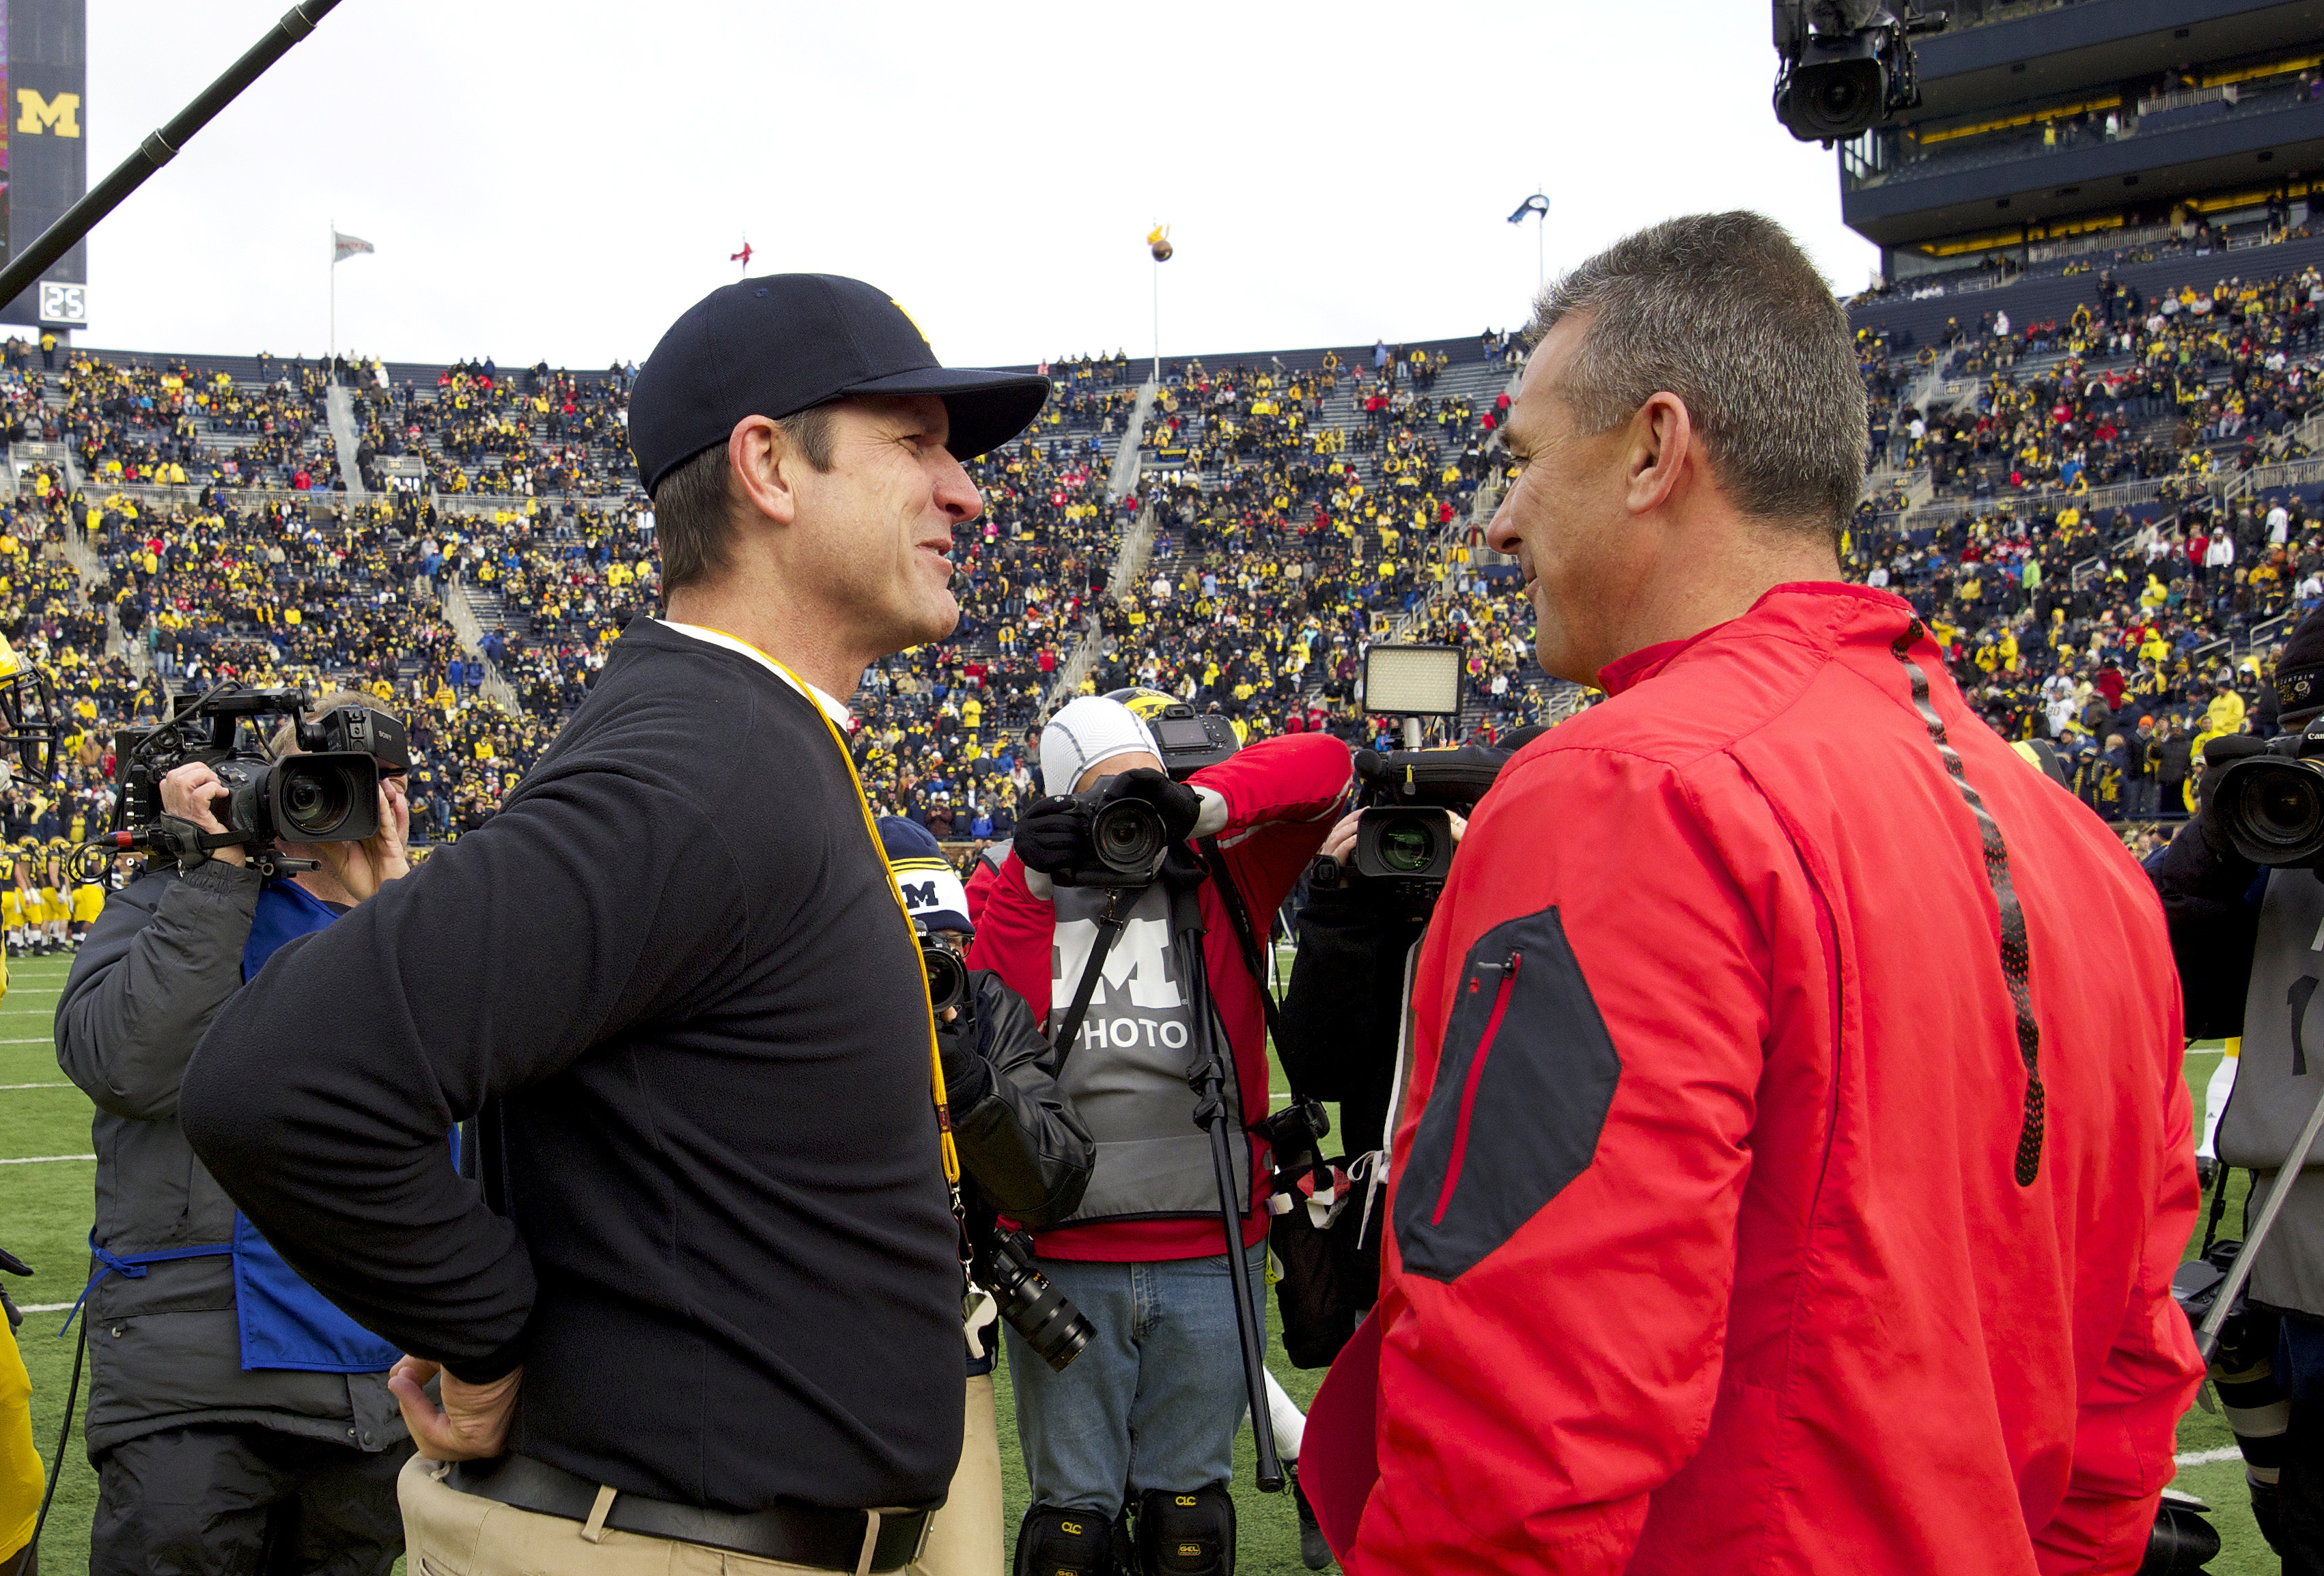 FILE - In this Nov. 27, 2015, file photo, Michigan head coach Jim Harbaugh, left, greets Ohio State head coach Urban Meyer, right, on the Michigan Stadium field before an NCAA college football game in Ann Arbor, Mich.Tthe second Harbaugh-Meyer matchup on